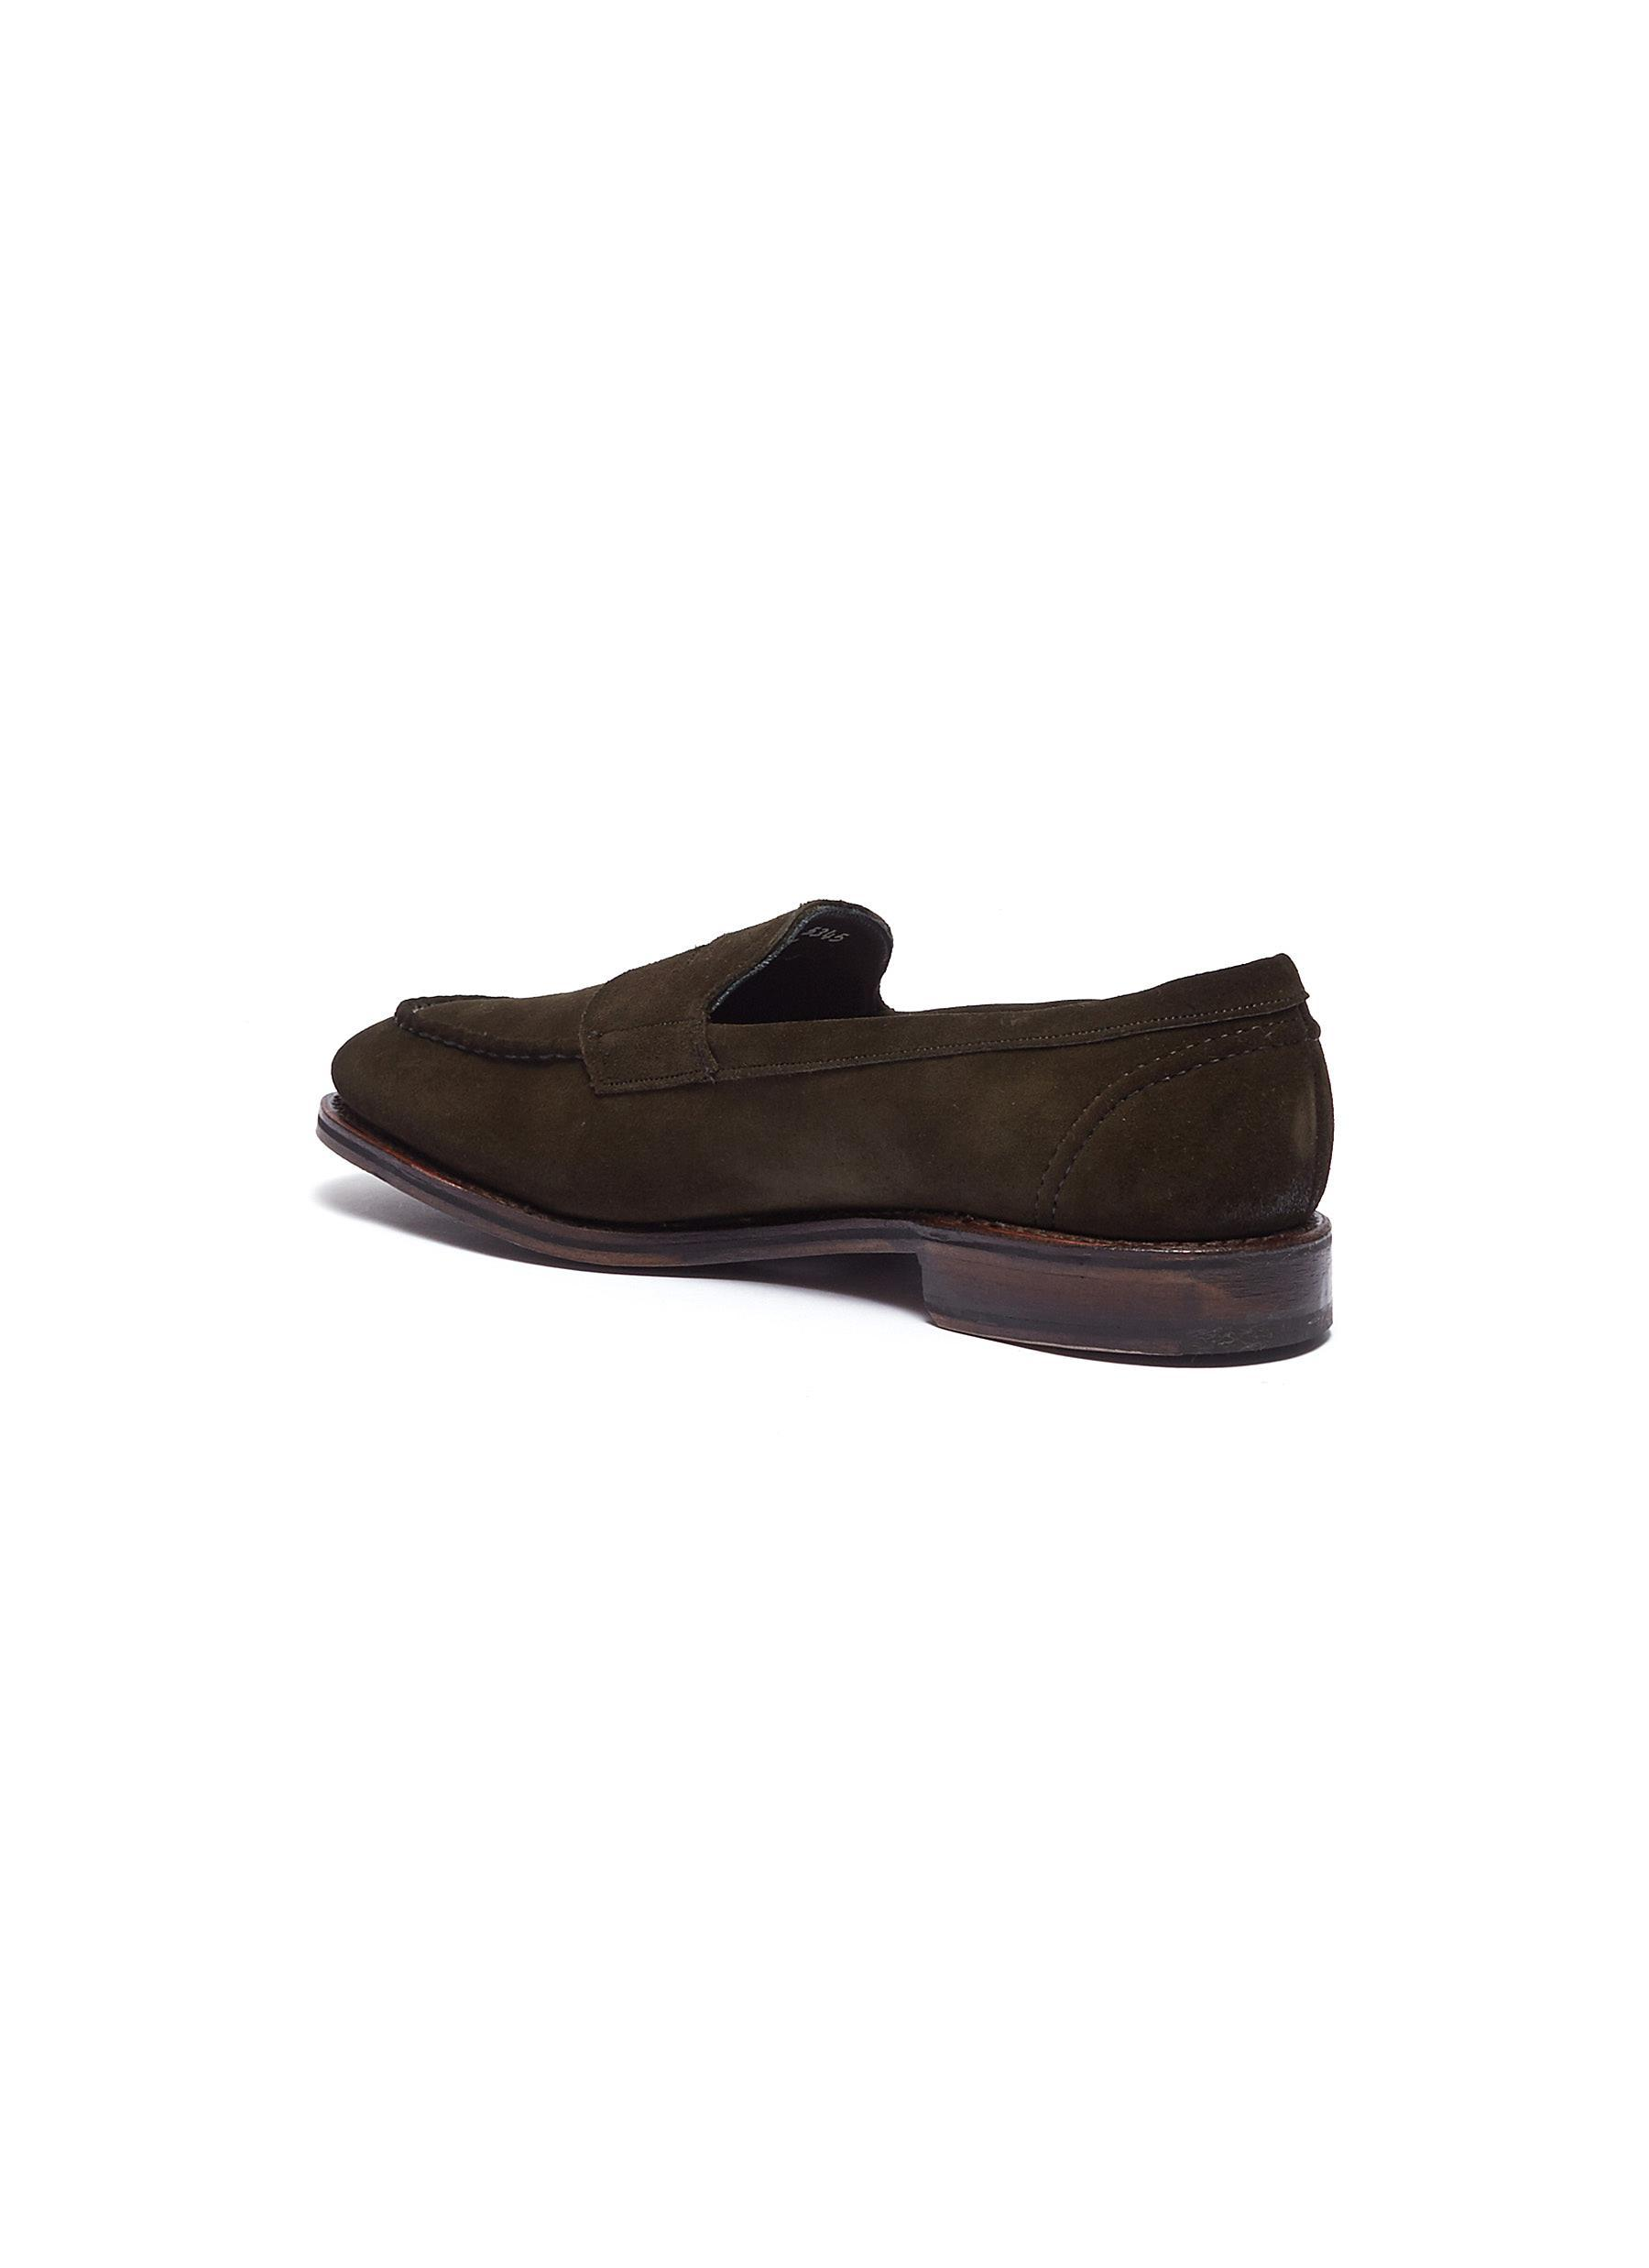 de3901d5c02 Allen Edmonds - Green  mercer Street  Suede Penny Loafers for Men - Lyst.  View fullscreen